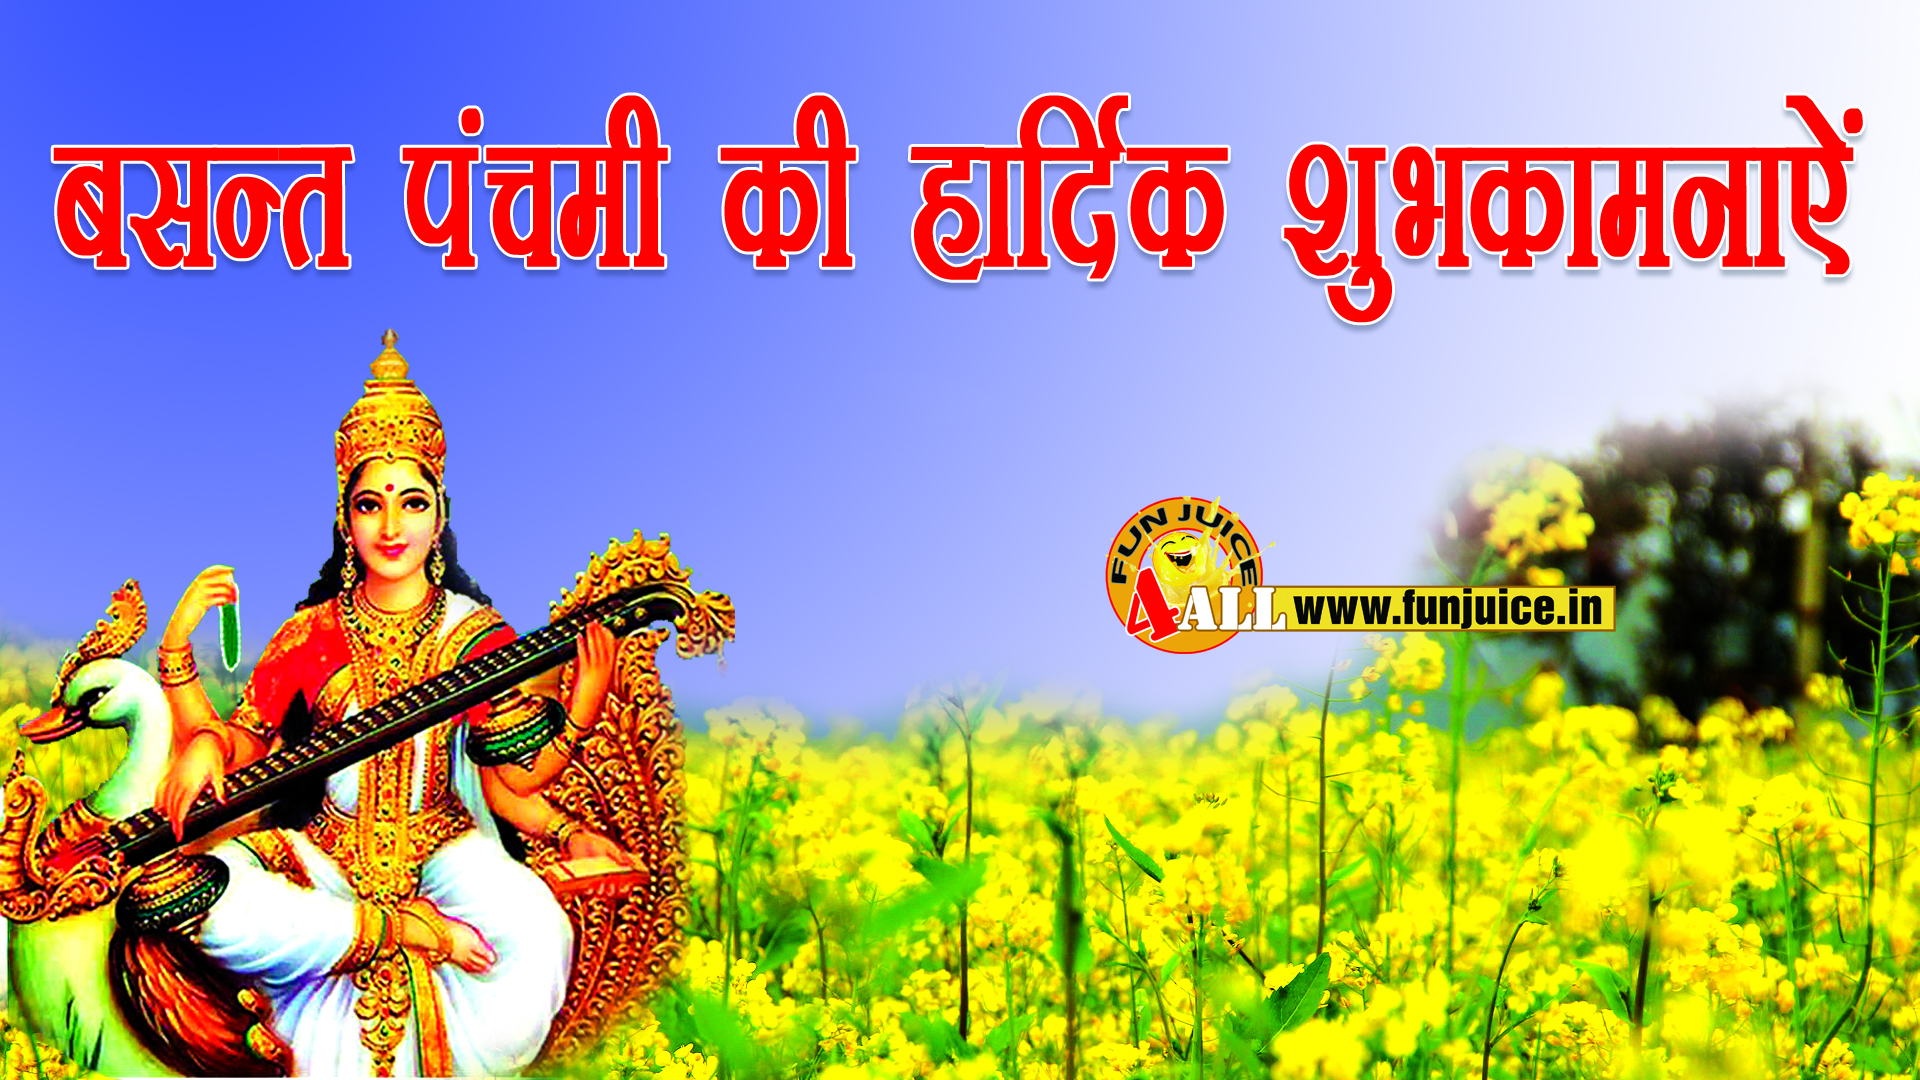 essay on basant panchami Basant panchami is celebrated by propitiating goddess saraswatiit is the fifth day of spring season this festival is also known as saraswati puja, as the goddess of knowledge saraswati is worshiped on this day.